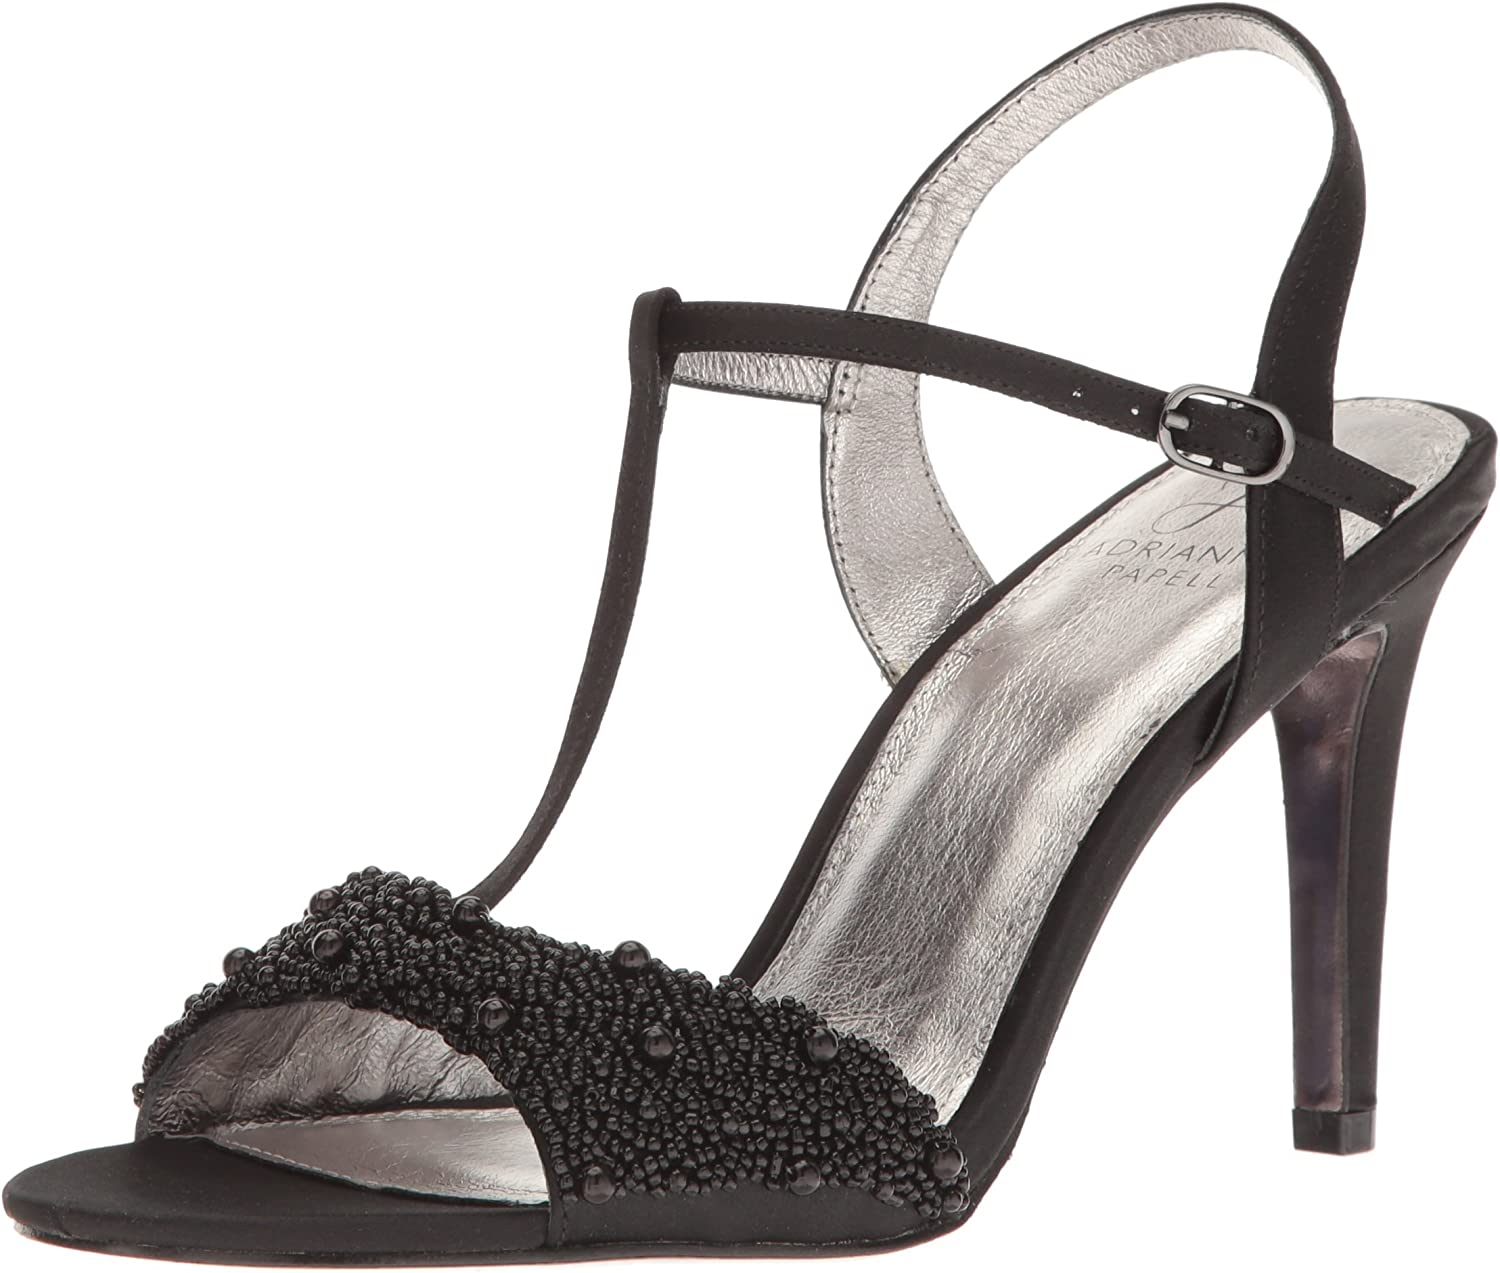 Adrianna Papell Womens Alia Dress Sandal